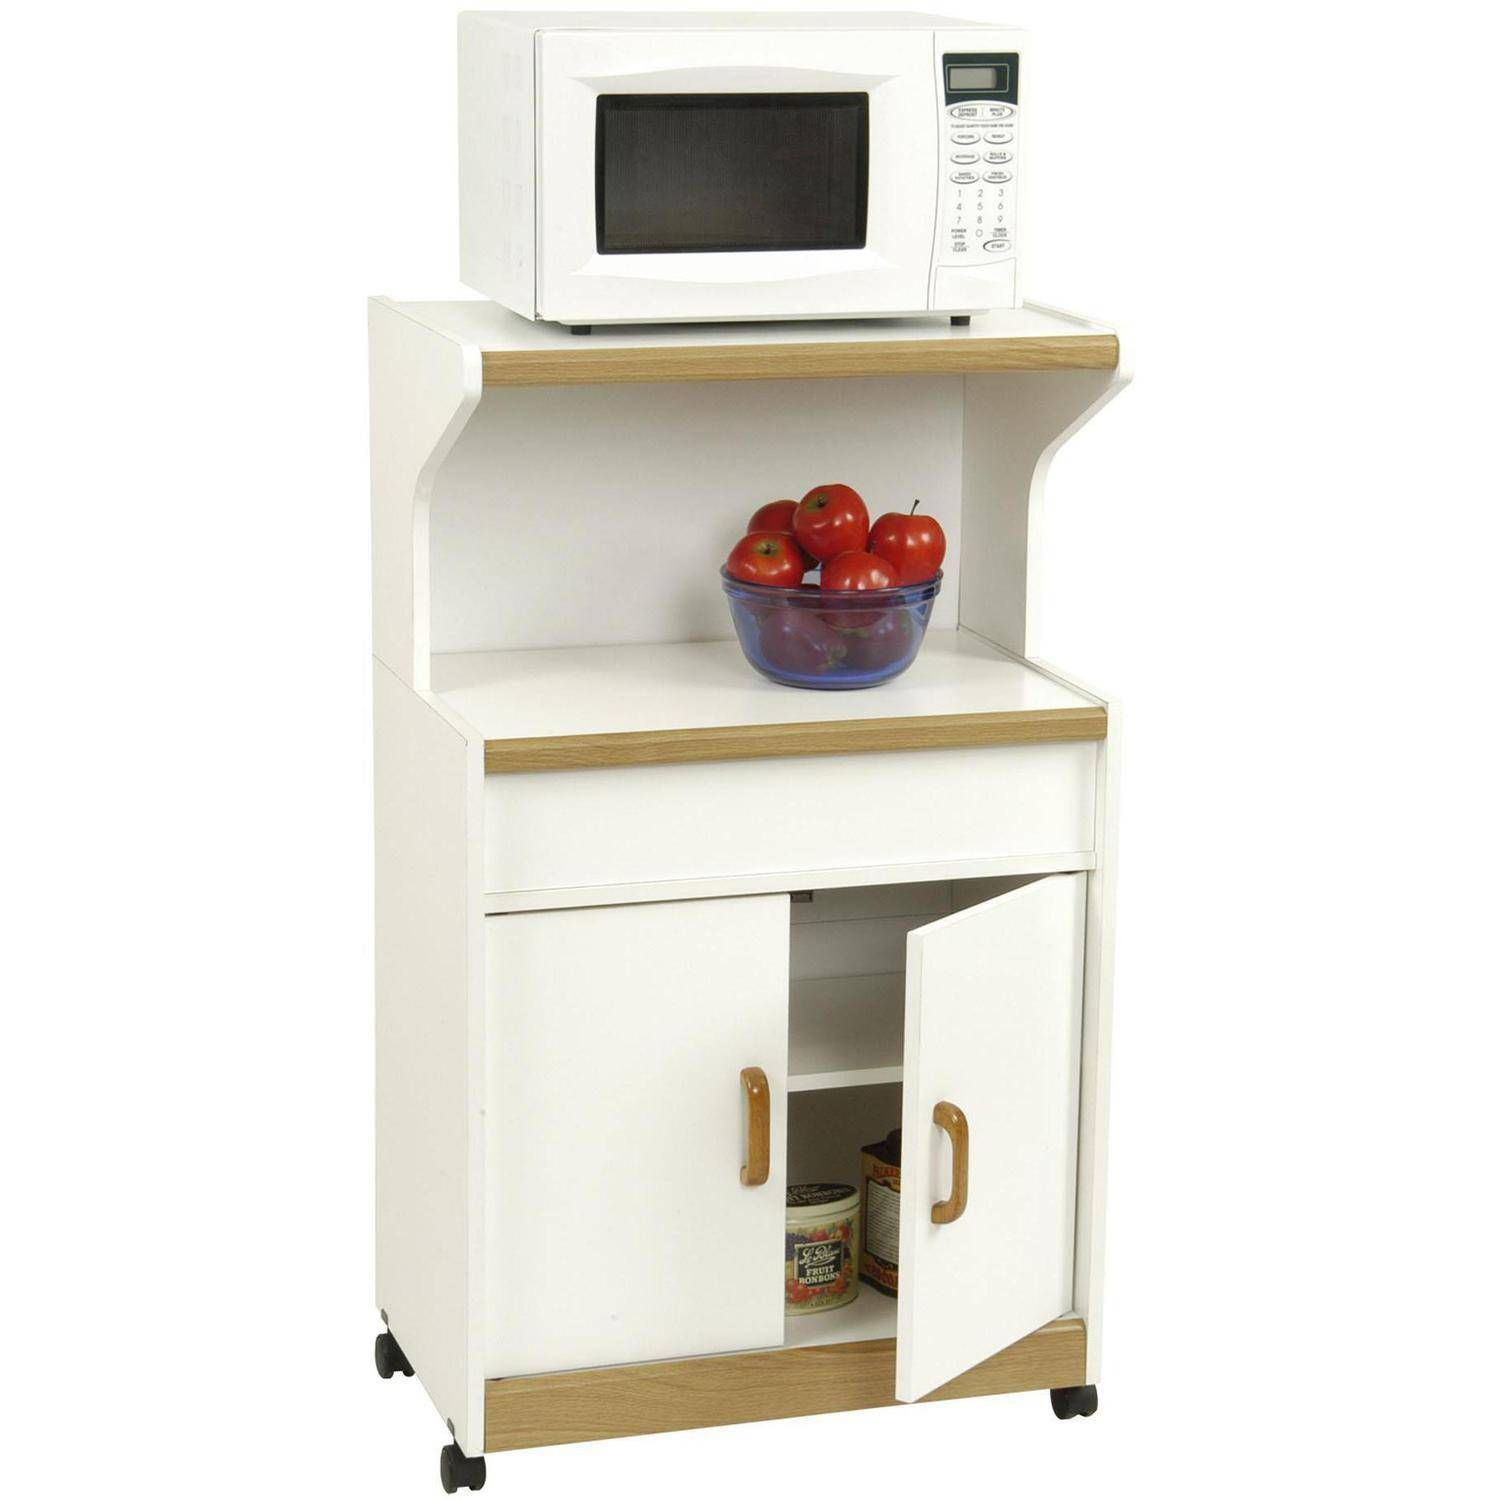 Kitchen Storage Pantry Cabinet school assignment simply ...